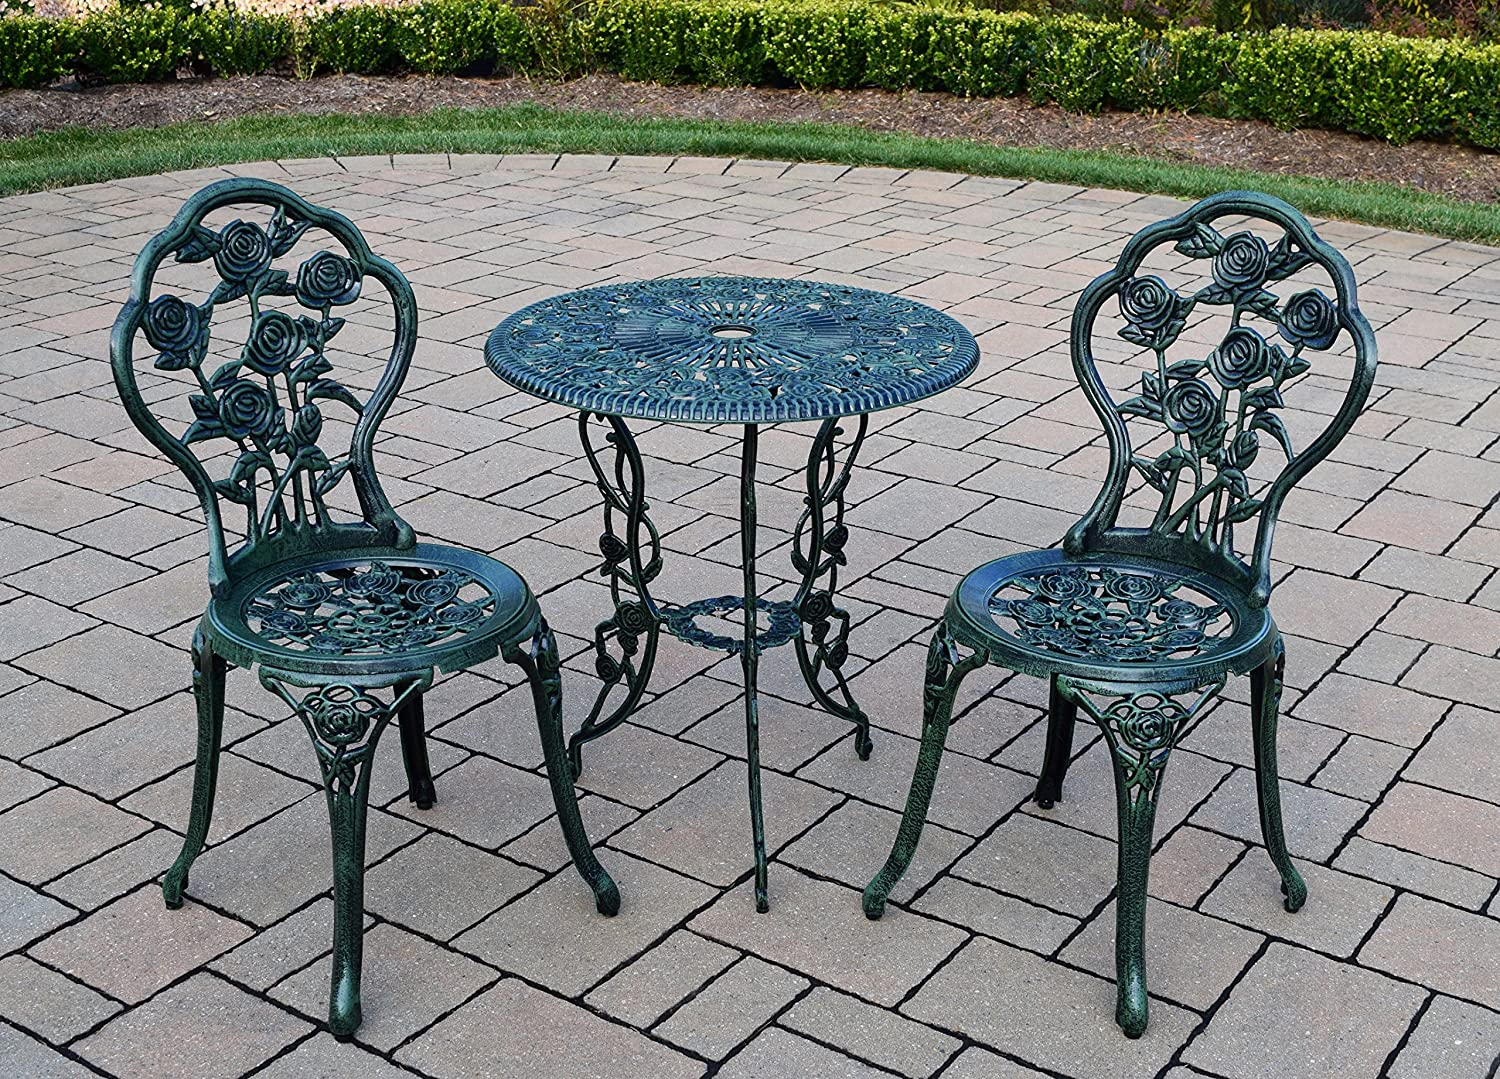 Vintage cafe table and chairs - Amazon Com Rose 3 Piece Bistro Patio Set Verdi Green Aluminum Top Table Garden Outdoor